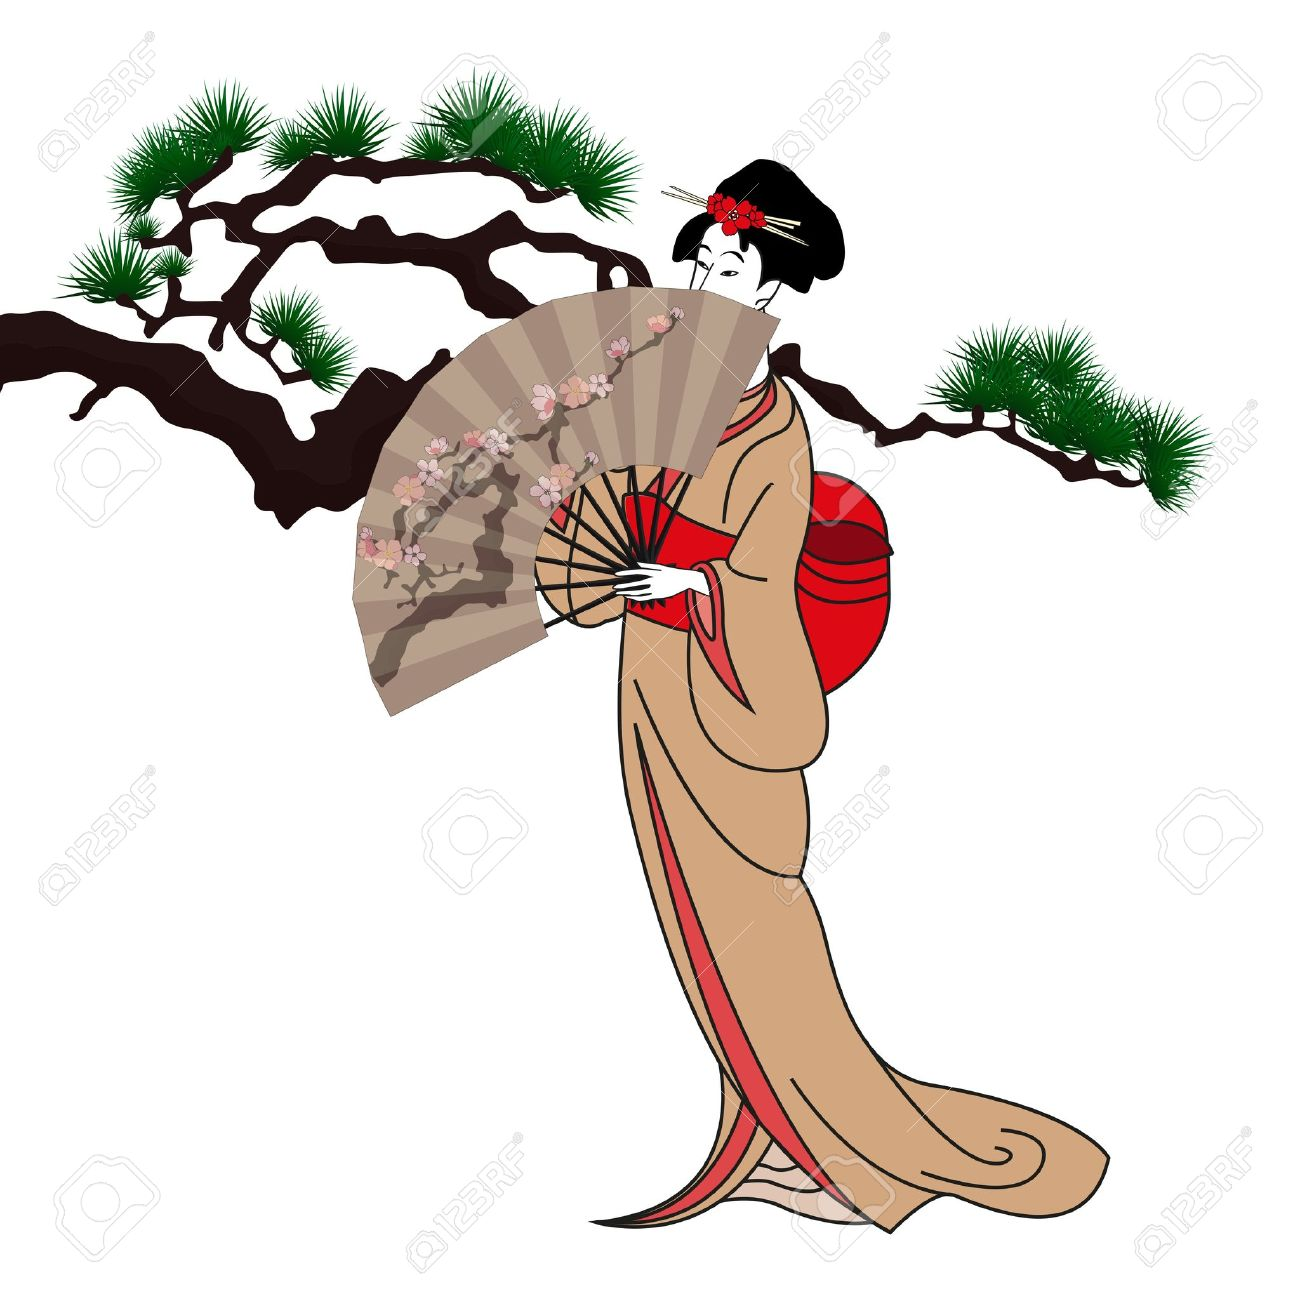 1300x1300 940 Japanese Umbrella Stock Vector Illustration And Royalty Free